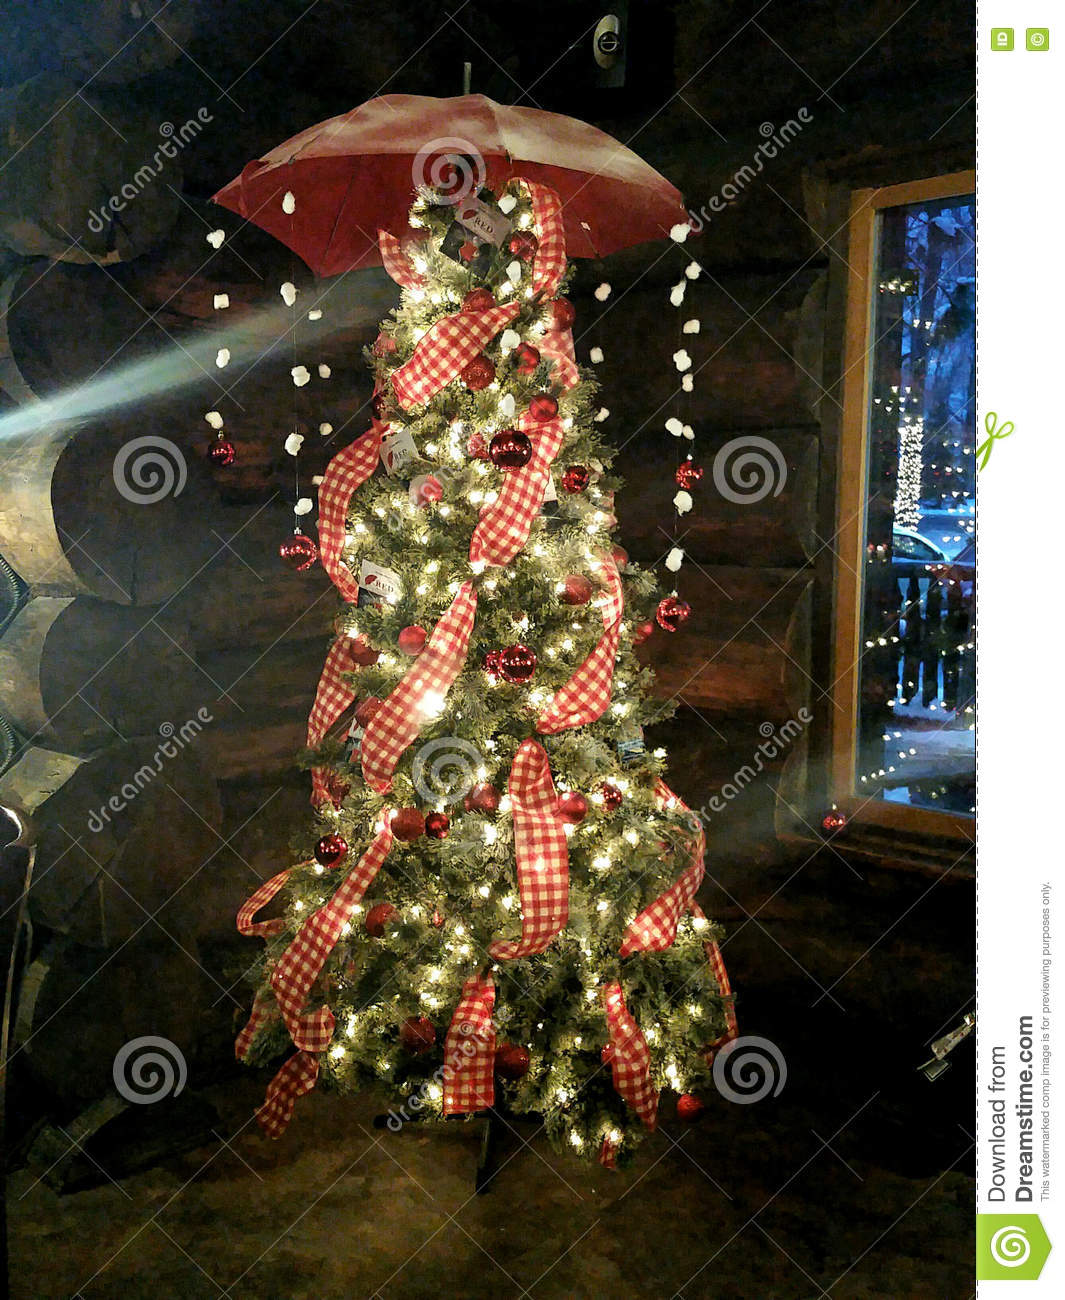 colorfully decorated christmas tree with umbrella and string lights hanging from the top - How To String Lights On A Christmas Tree